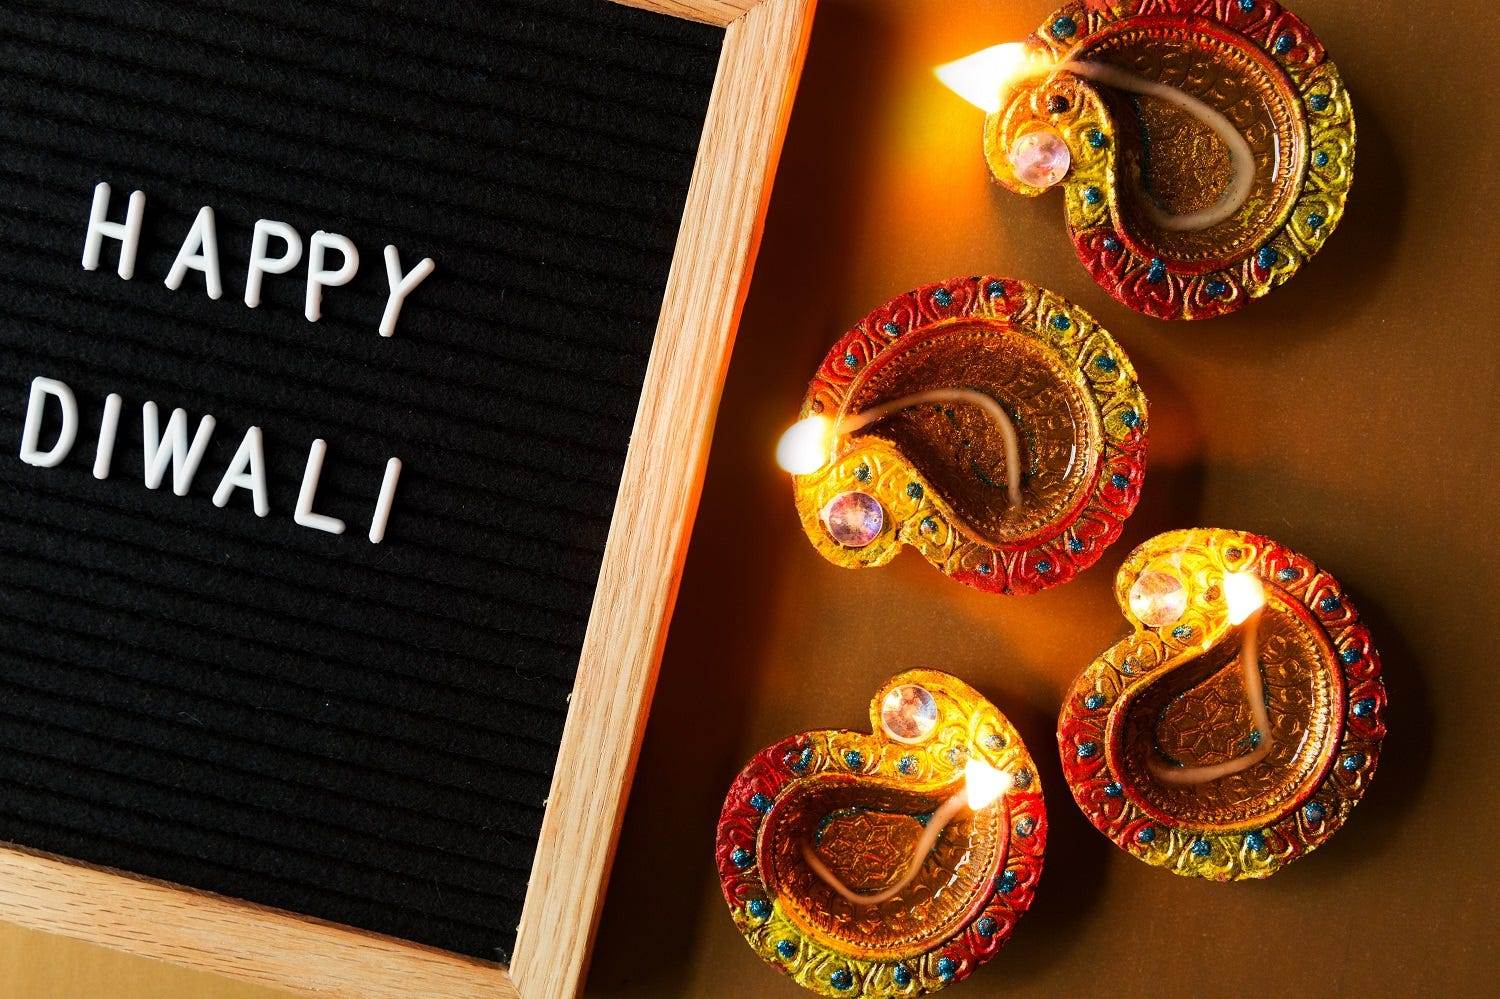 Diwali traditions: How Diwali is celebrated in the different states of India